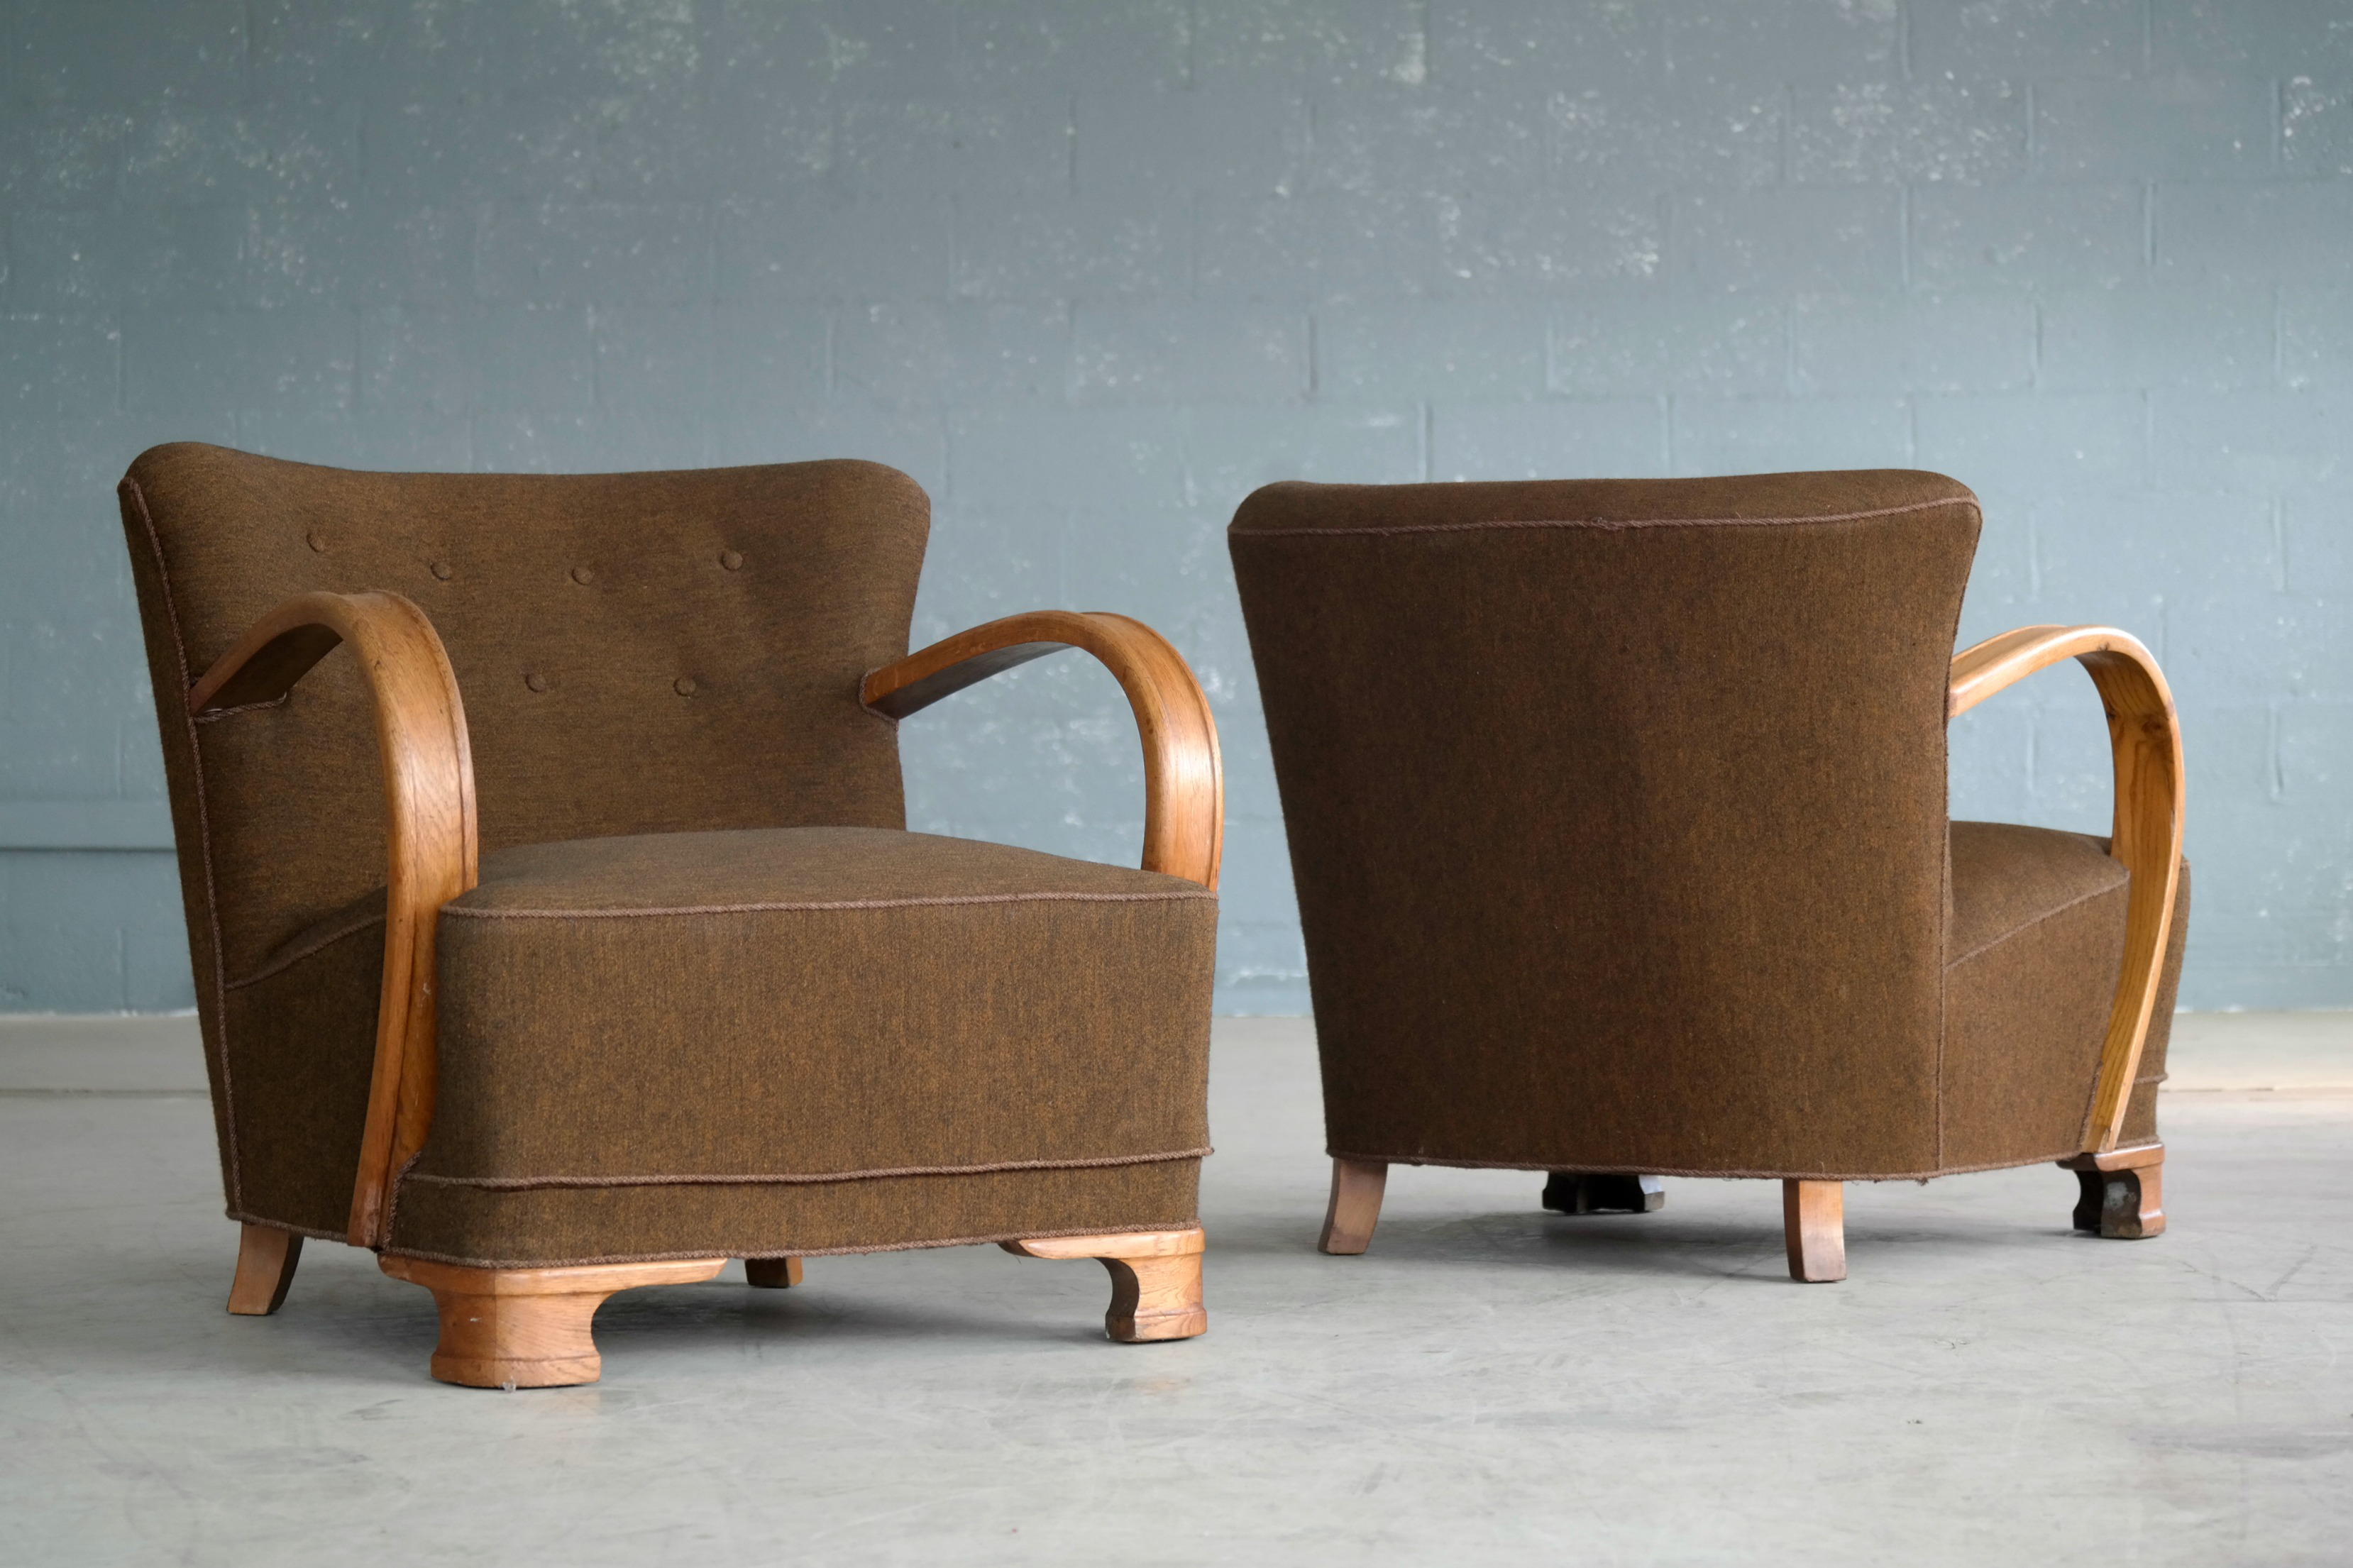 Pair Of Boesen Style 1940s Art Deco Chairs Lounge Chairs In Oak And Wool    Image